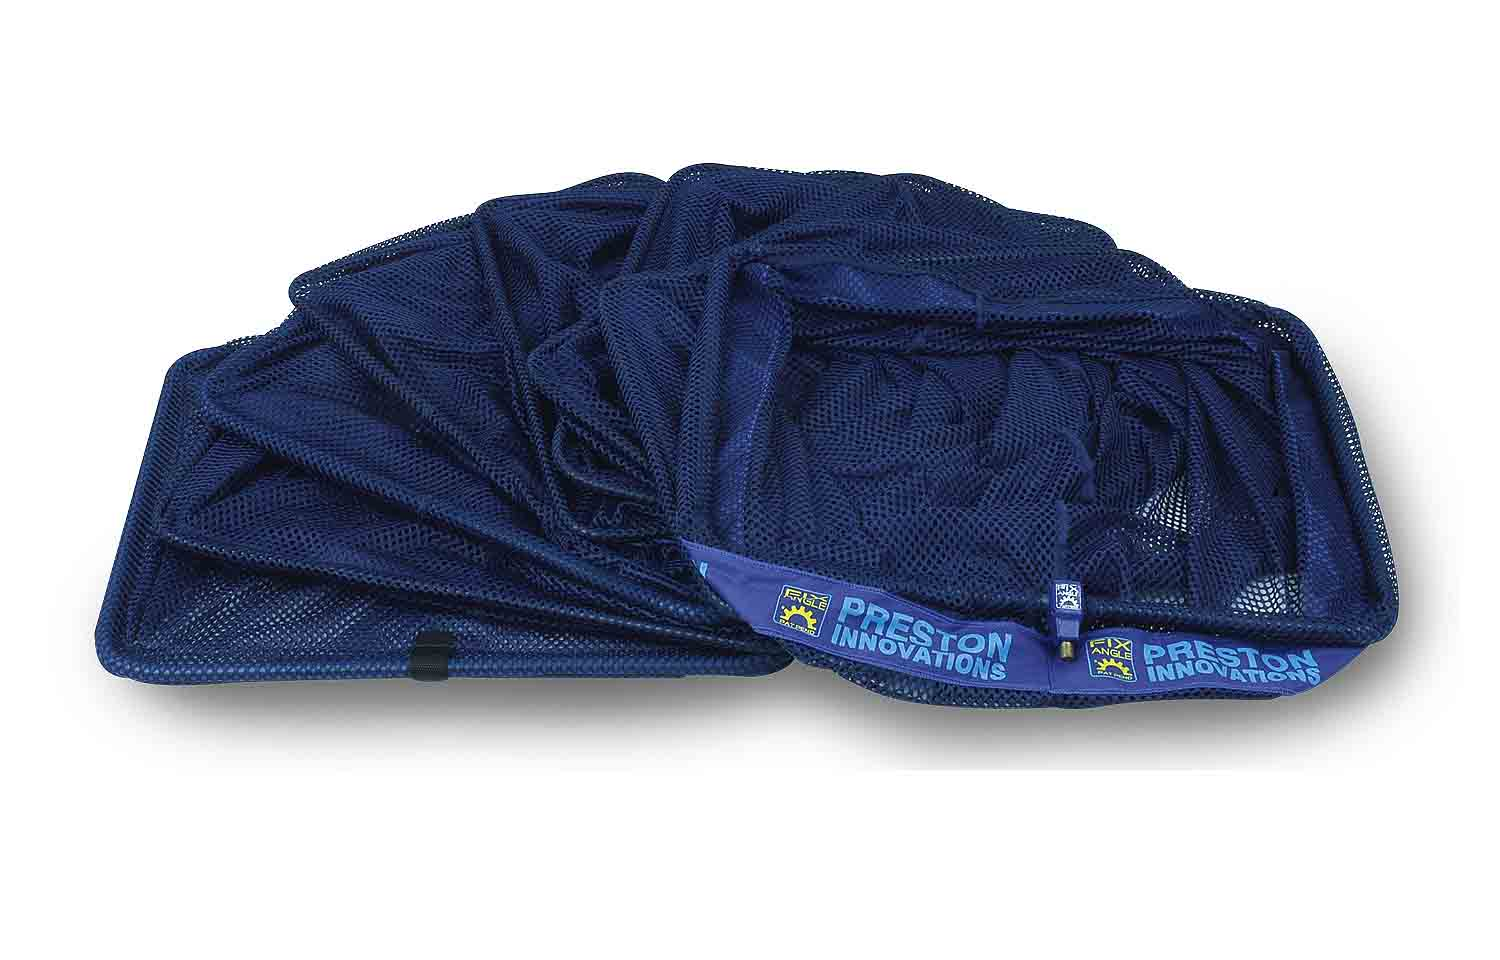 Preston Innovations Quick Dry Keepnets